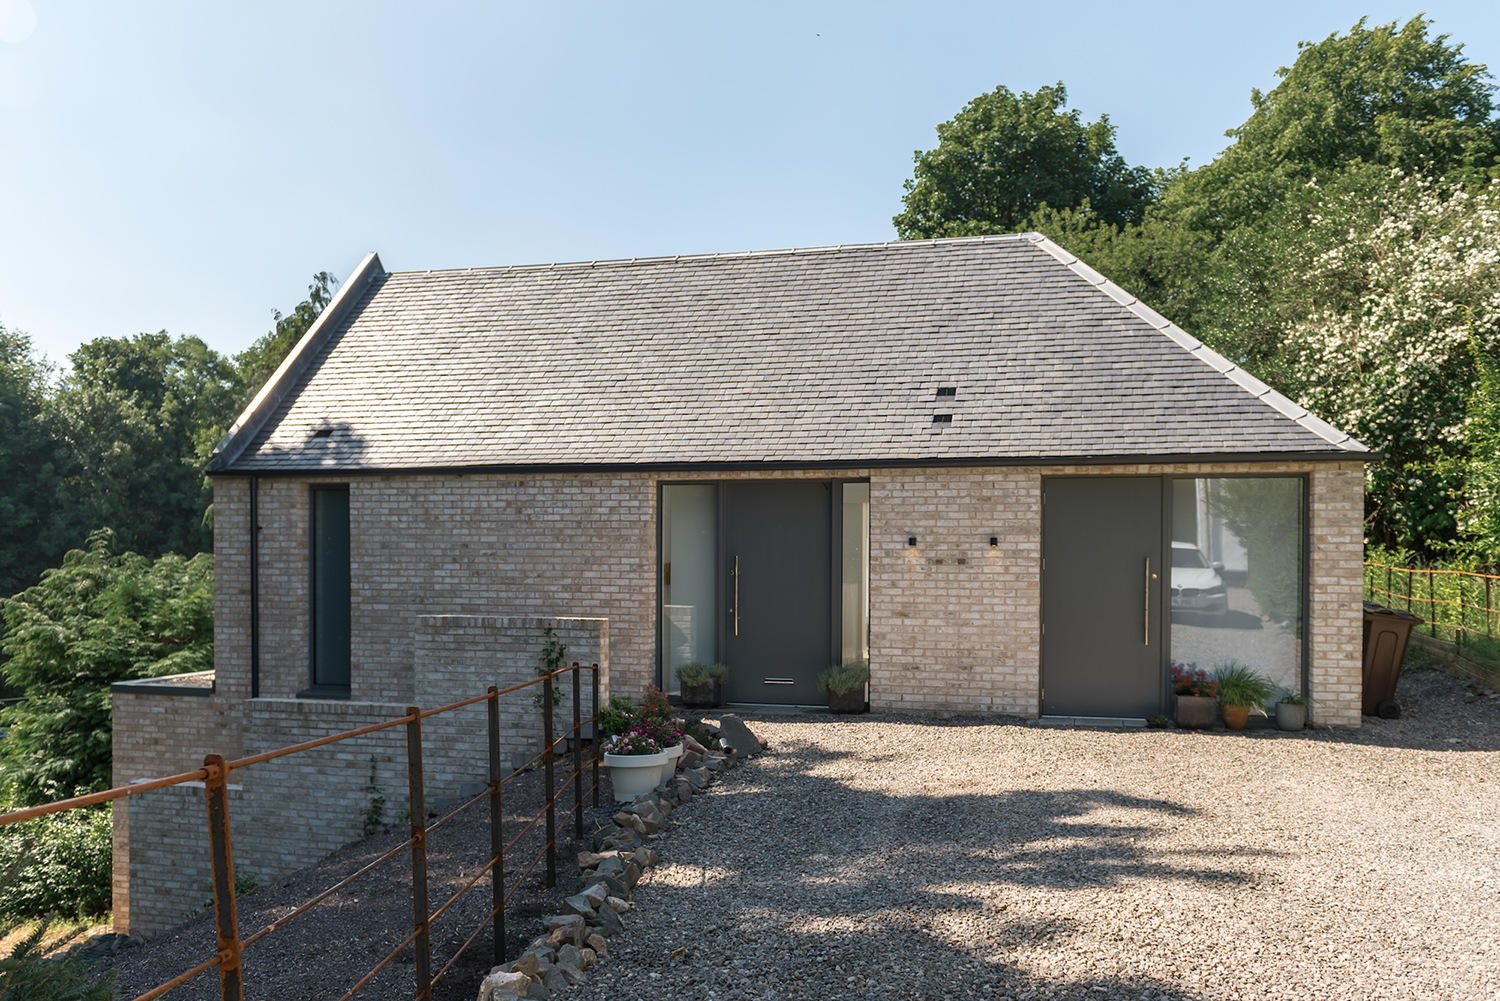 CUPA Heavy 3 slate provides traditional look for modern property